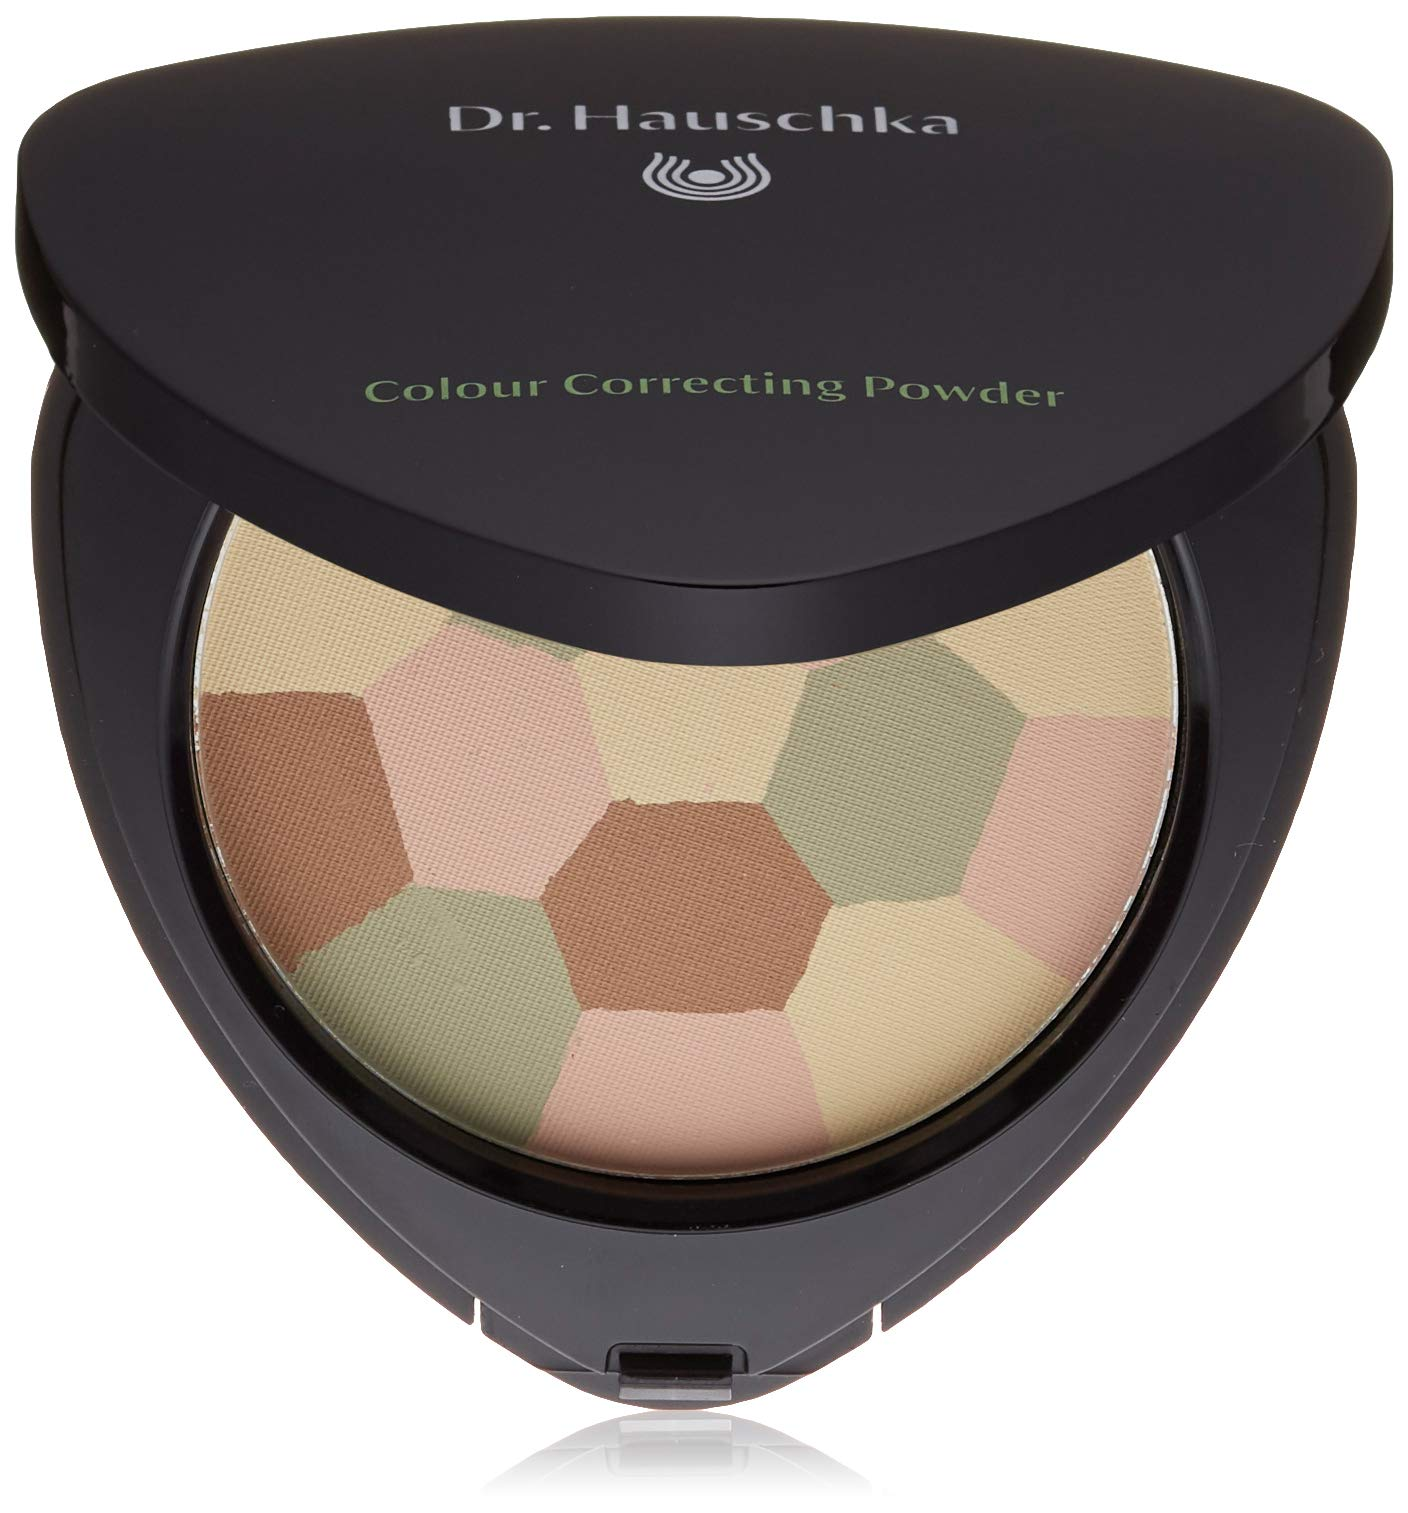 Colour Correcting Powder 00, Dr. Hauschka, Highlights and Evens Skin Tone, Translucent, 0.28 oz